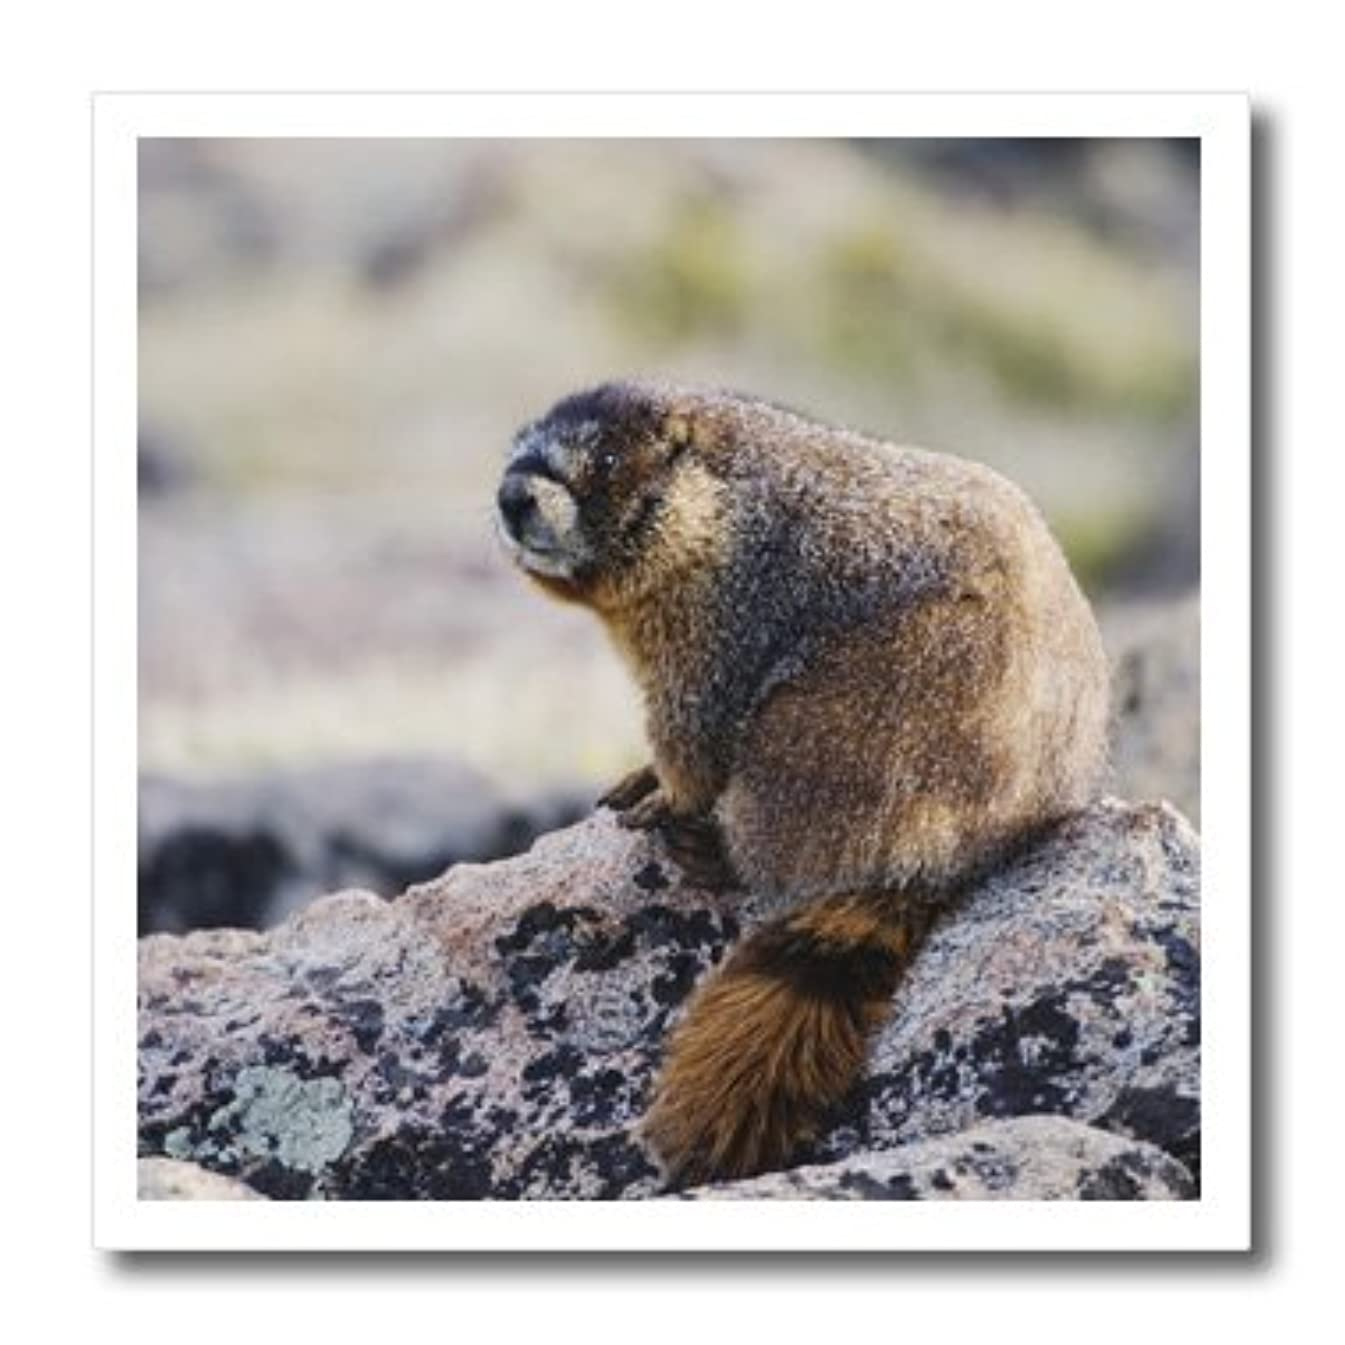 3dRose ht_84655_3 Bellied Marmot Wildlife Rocky Mountain Rolf Nussbaum Iron on Heat Transfer Paper, Yellow